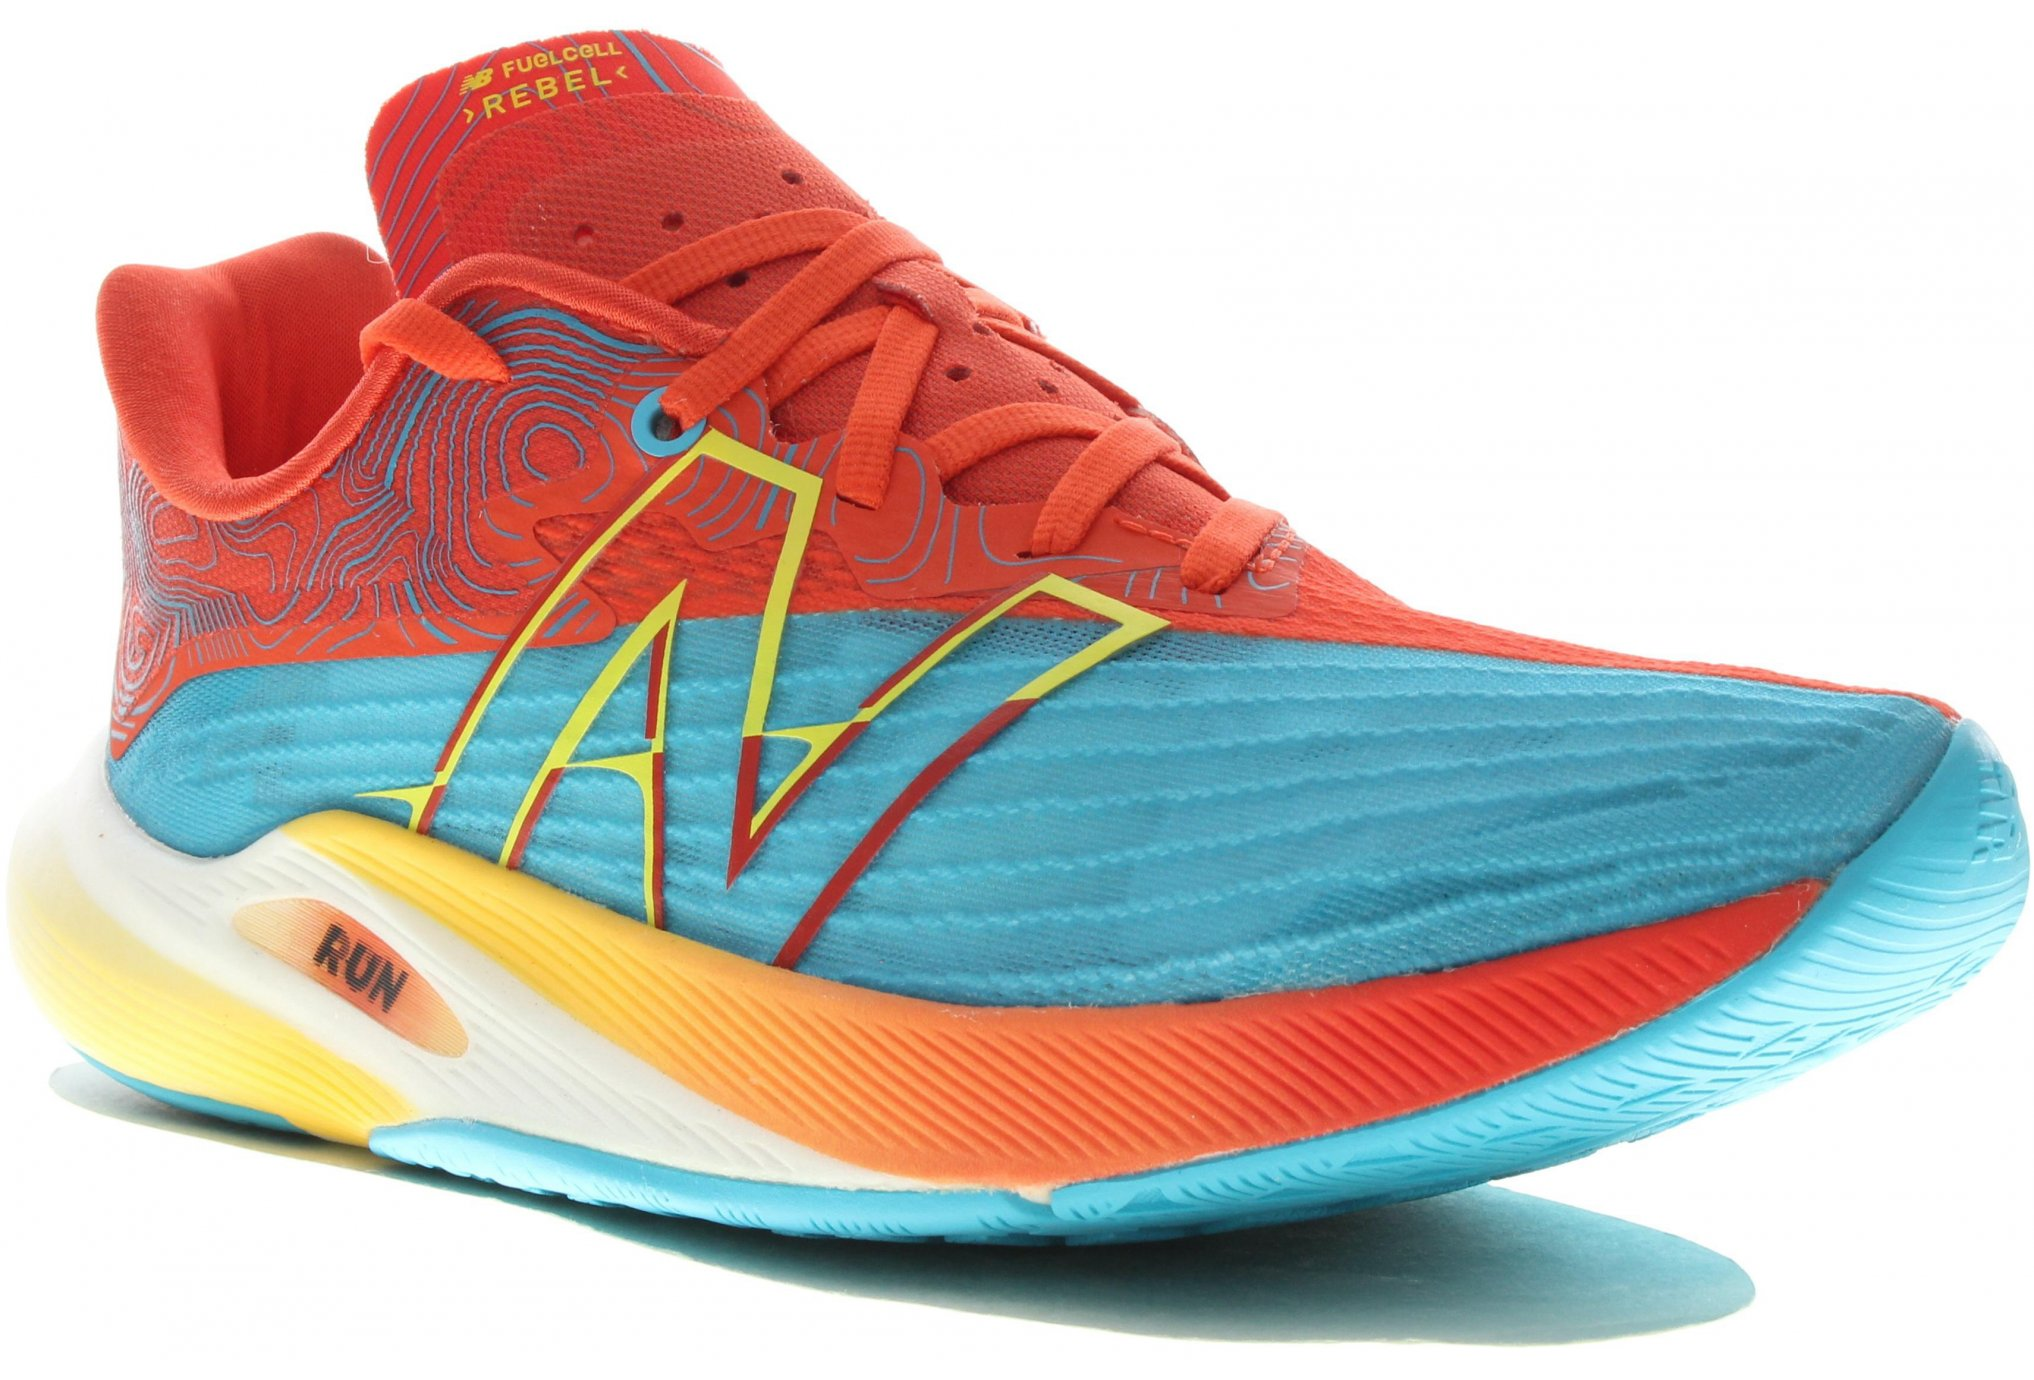 New Balance FuelCell Rebel V2 W Chaussures running femme